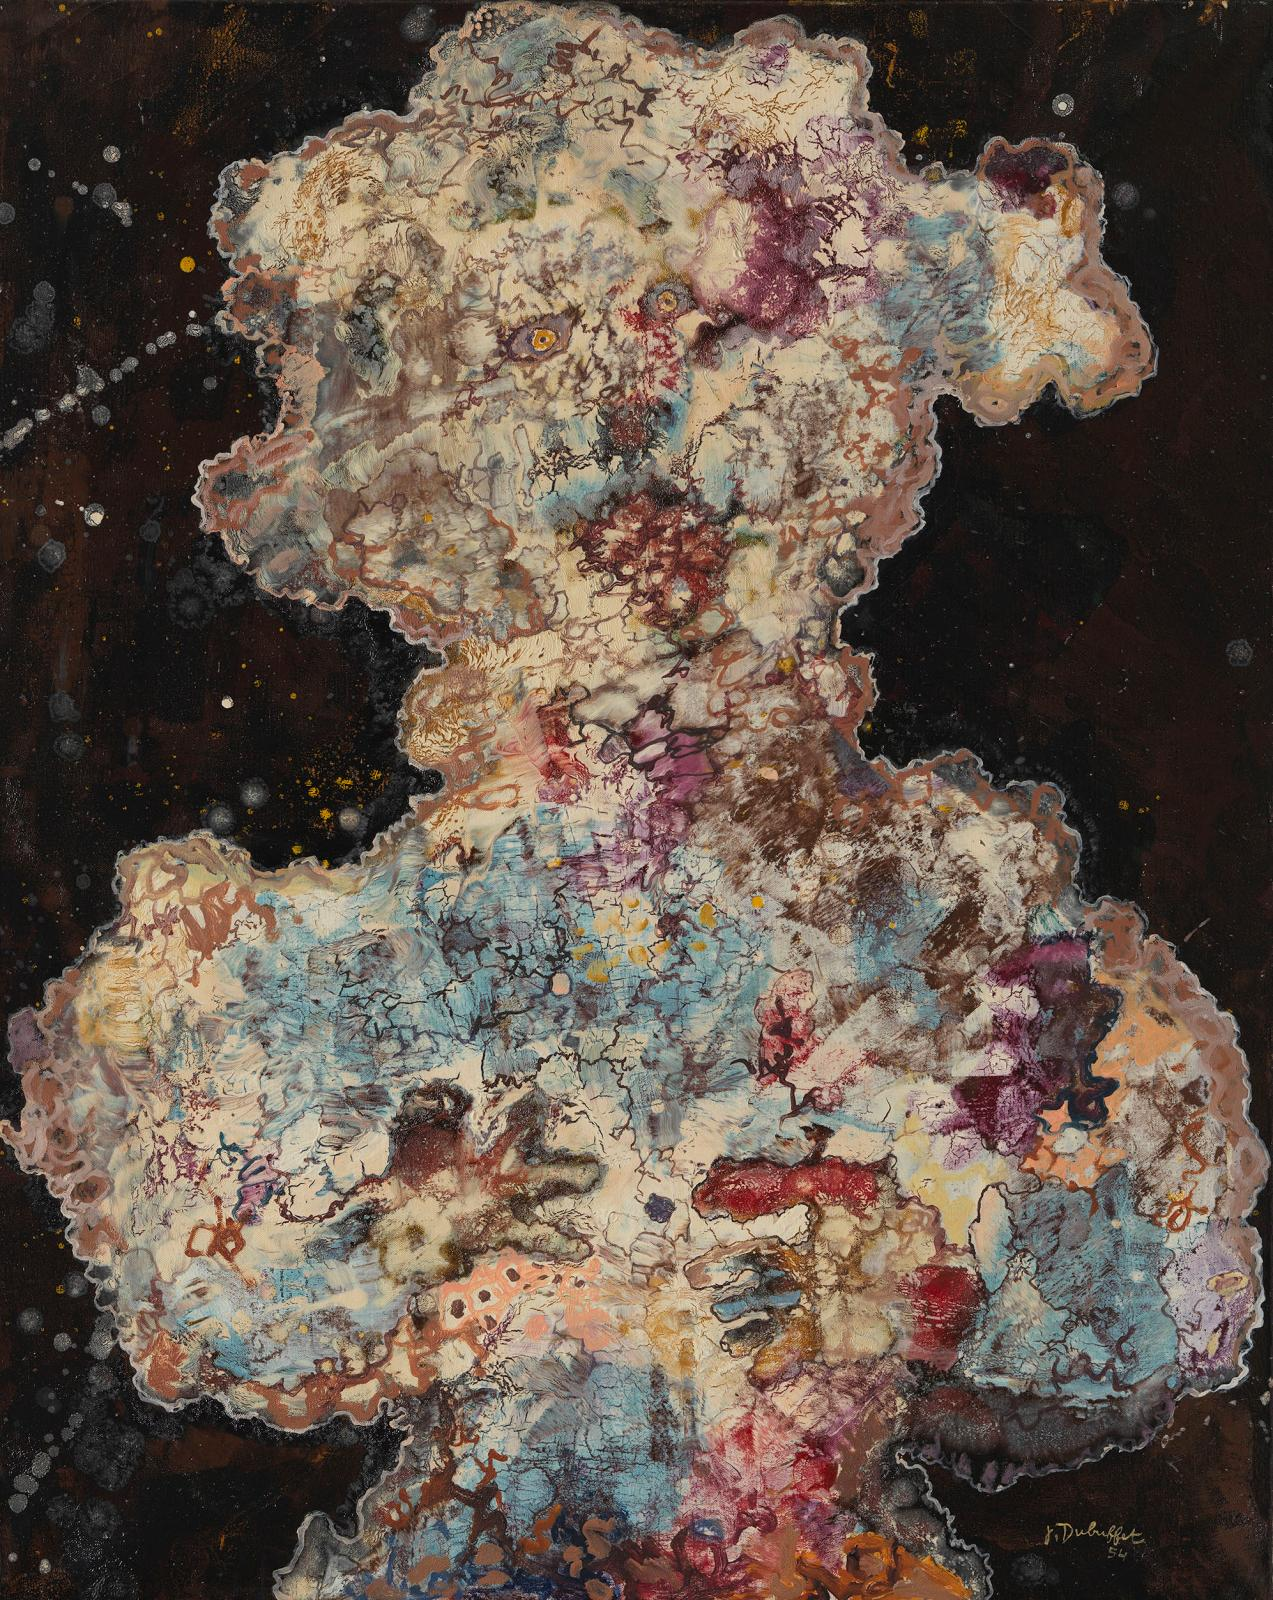 Jean Dubuffet, The Extravagant One (L'Extravagante), July 1954. Private Collection© ADAGP, Paris and DACS, London 2020. Photograph by Jose